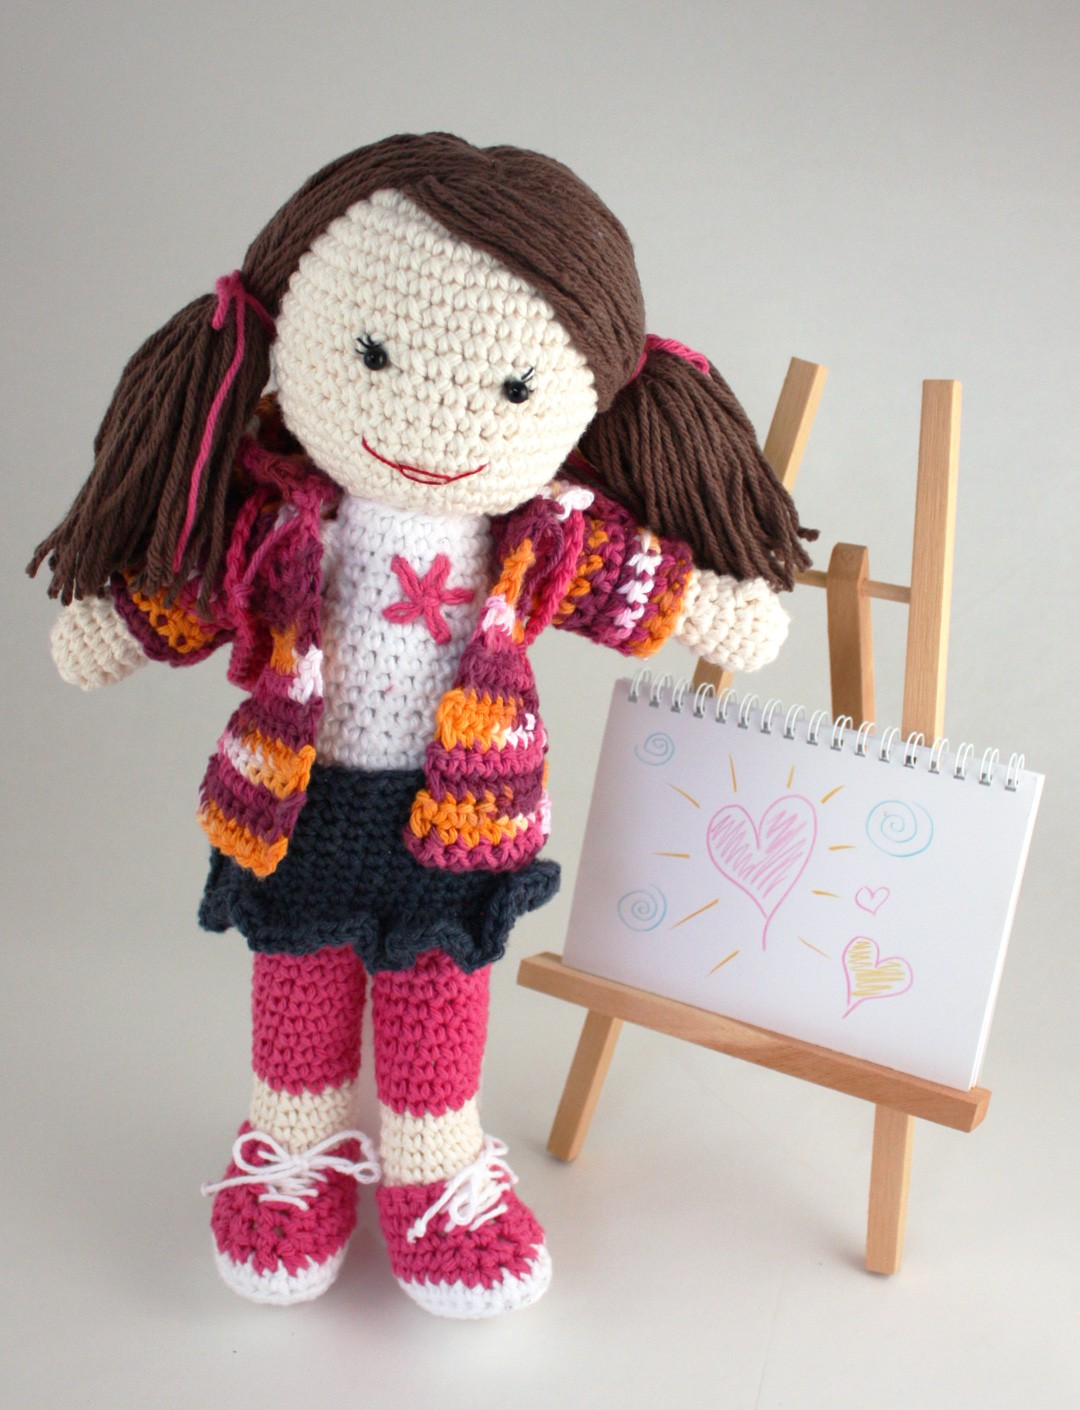 Crochet Just For Her Dolls - Meet Lily & Friends - The Crochet Crowd®